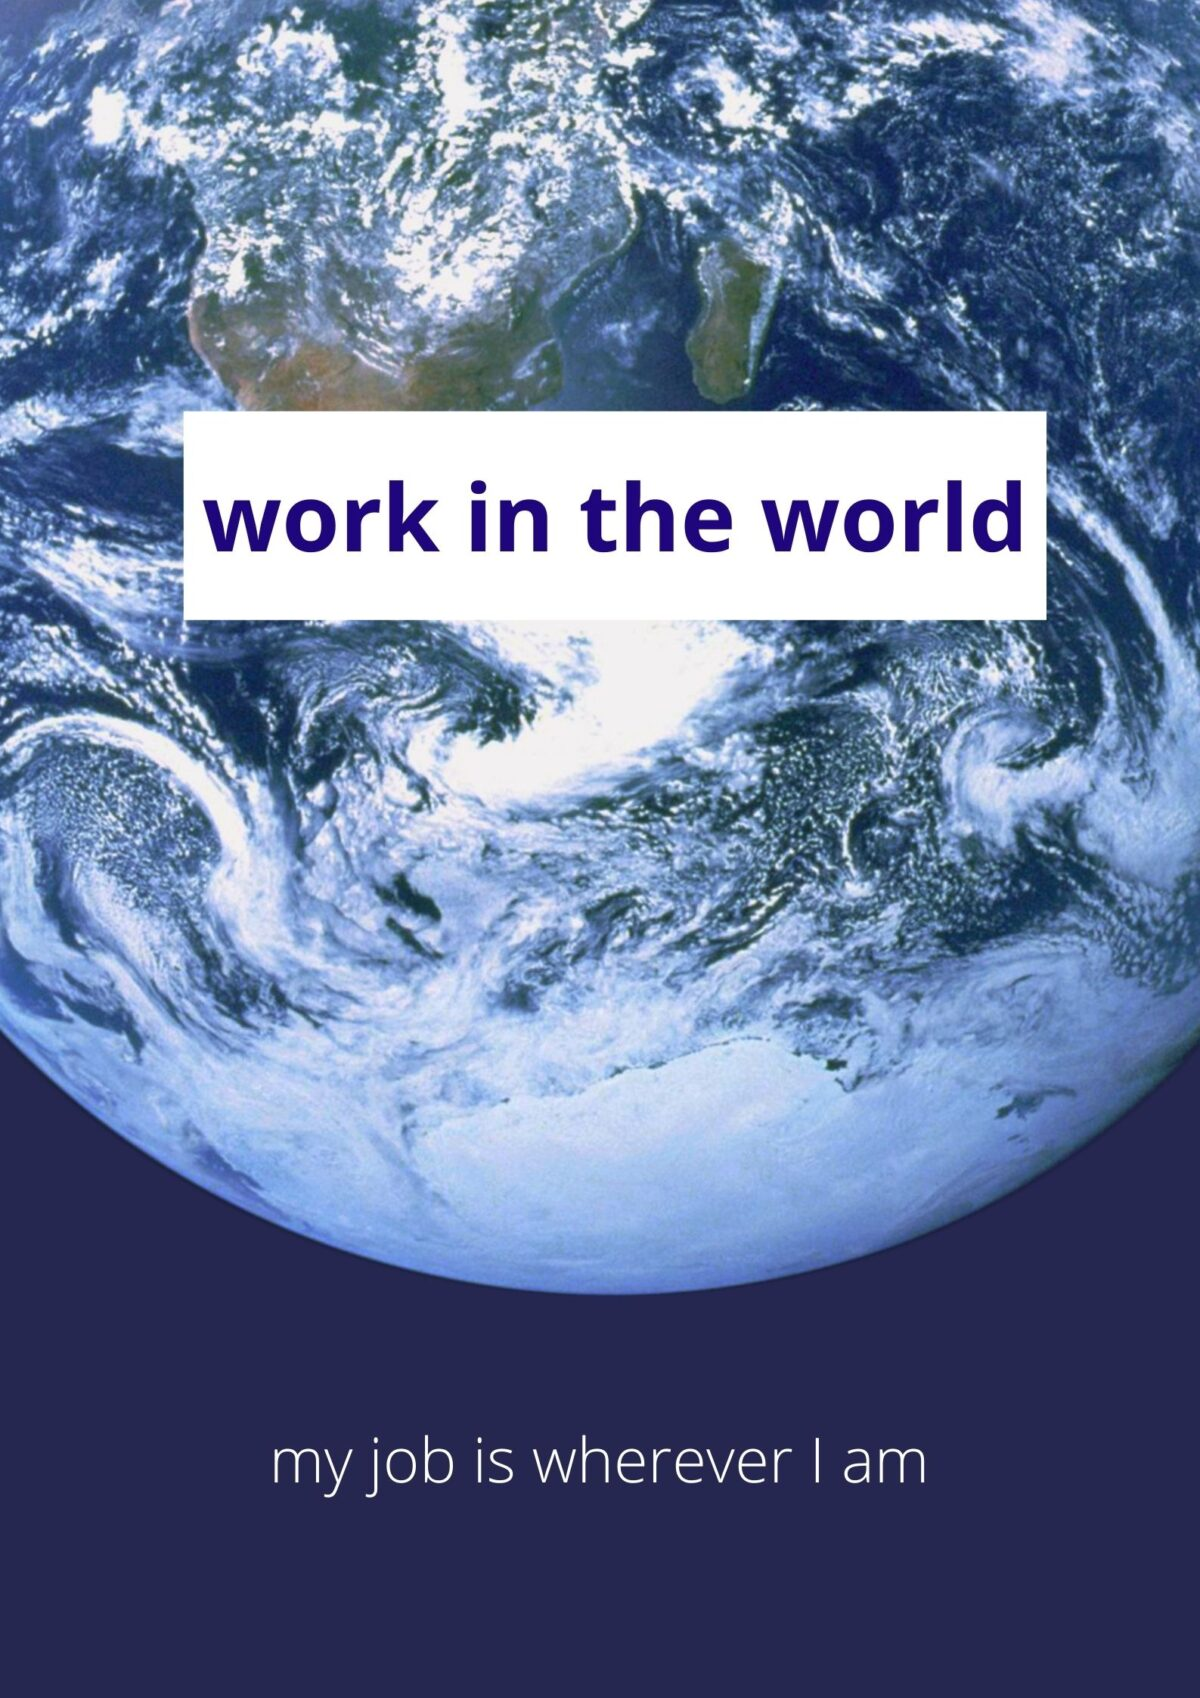 work in the world